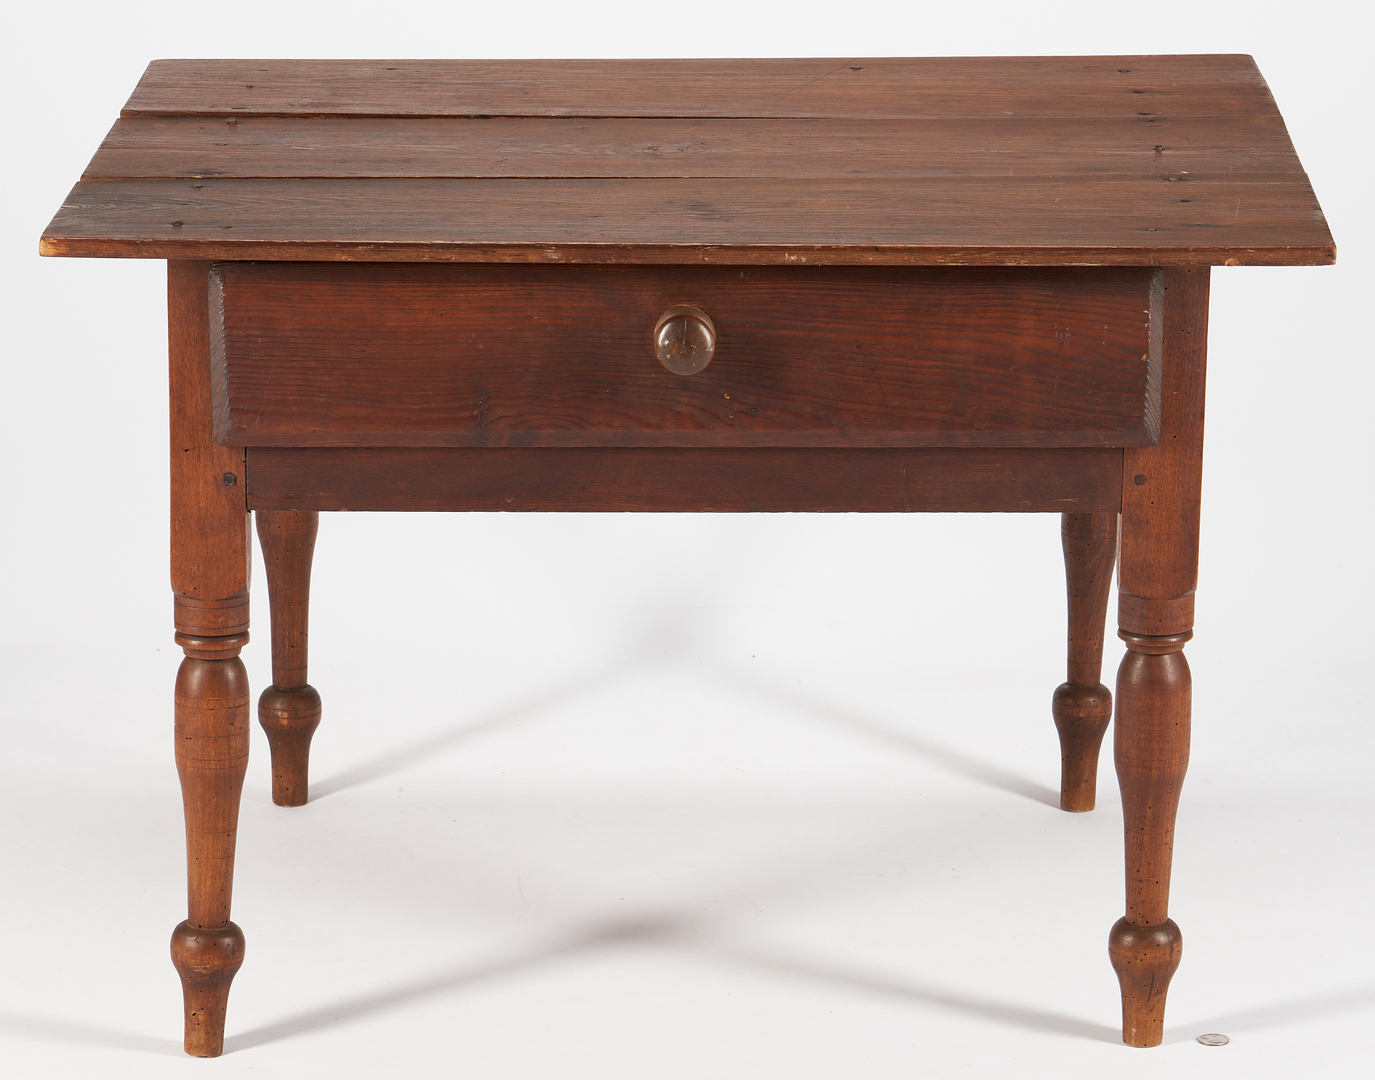 Lot 1038: Southern Vernacular Turned Leg Low Table